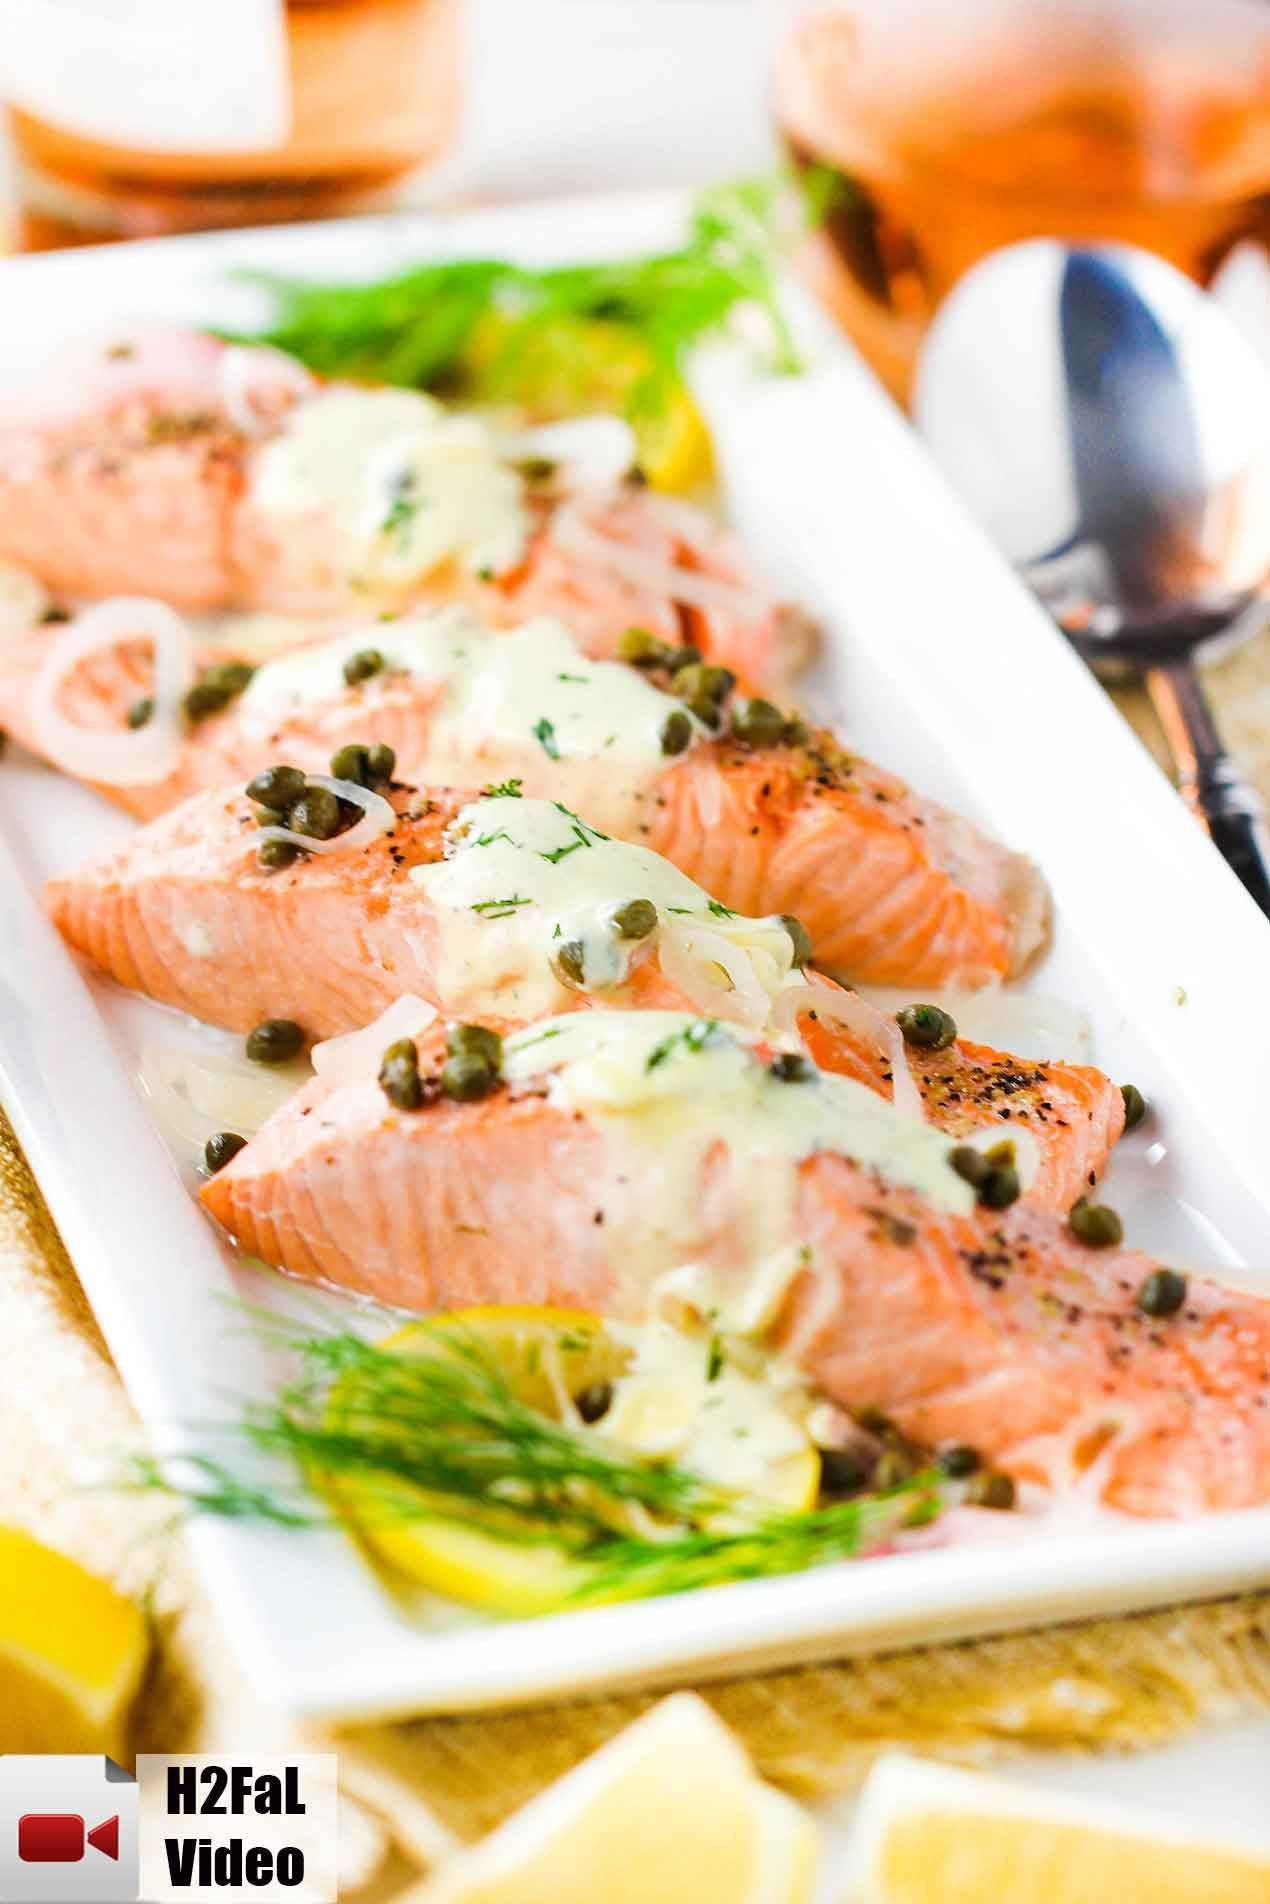 Poached Salmon with Capers and Hollandaise Sauce #hollandaisesauce